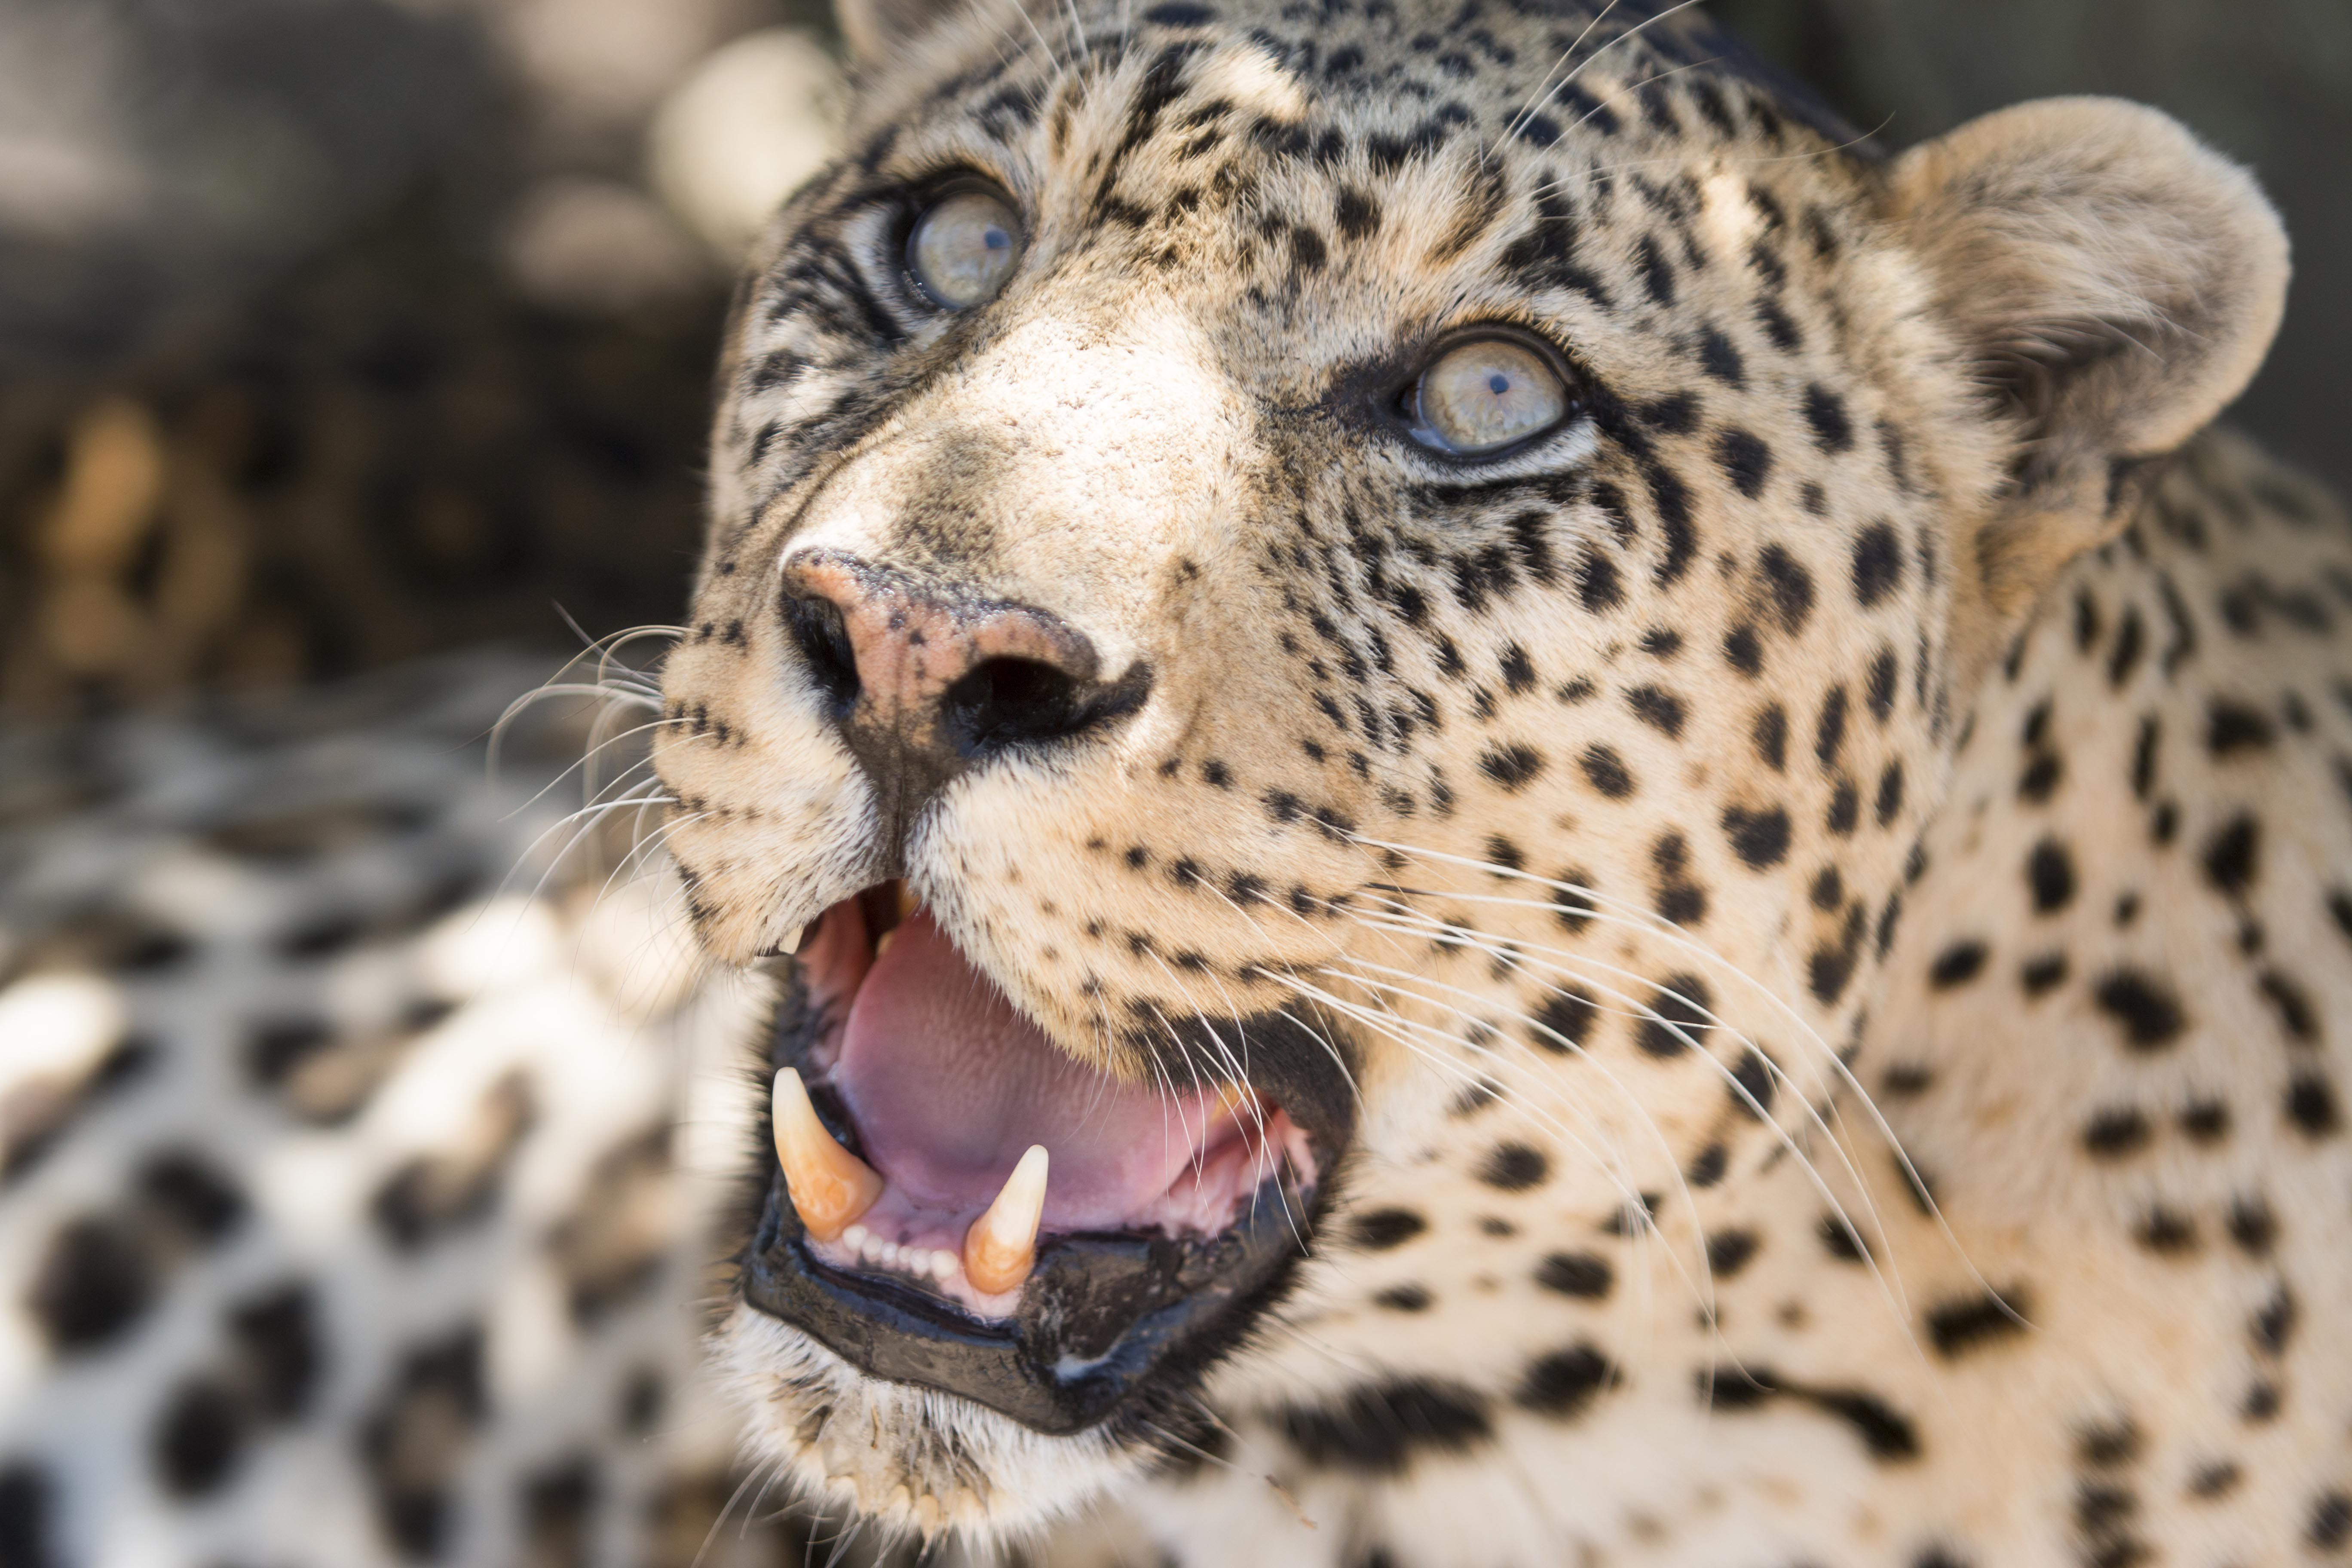 A close up of a leopard's face